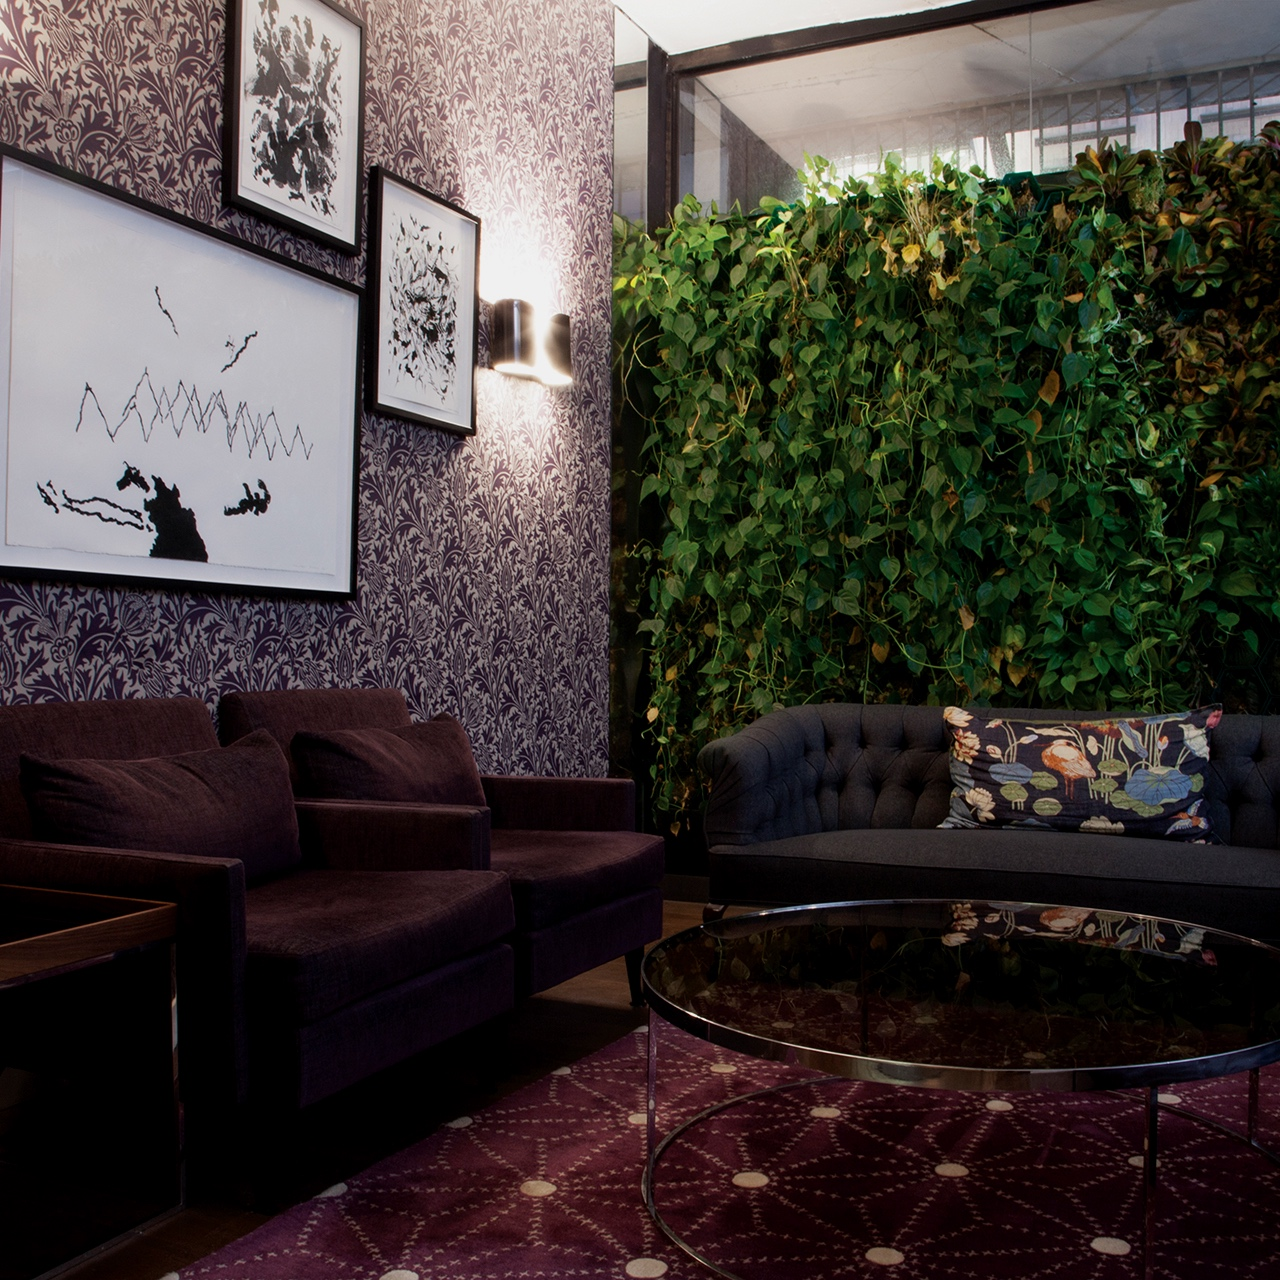 City Park Entrance 1 - Enjoy the serenity of nature in a private lounge that is set against vertical gardens, balanced by William Morris wallpaper.